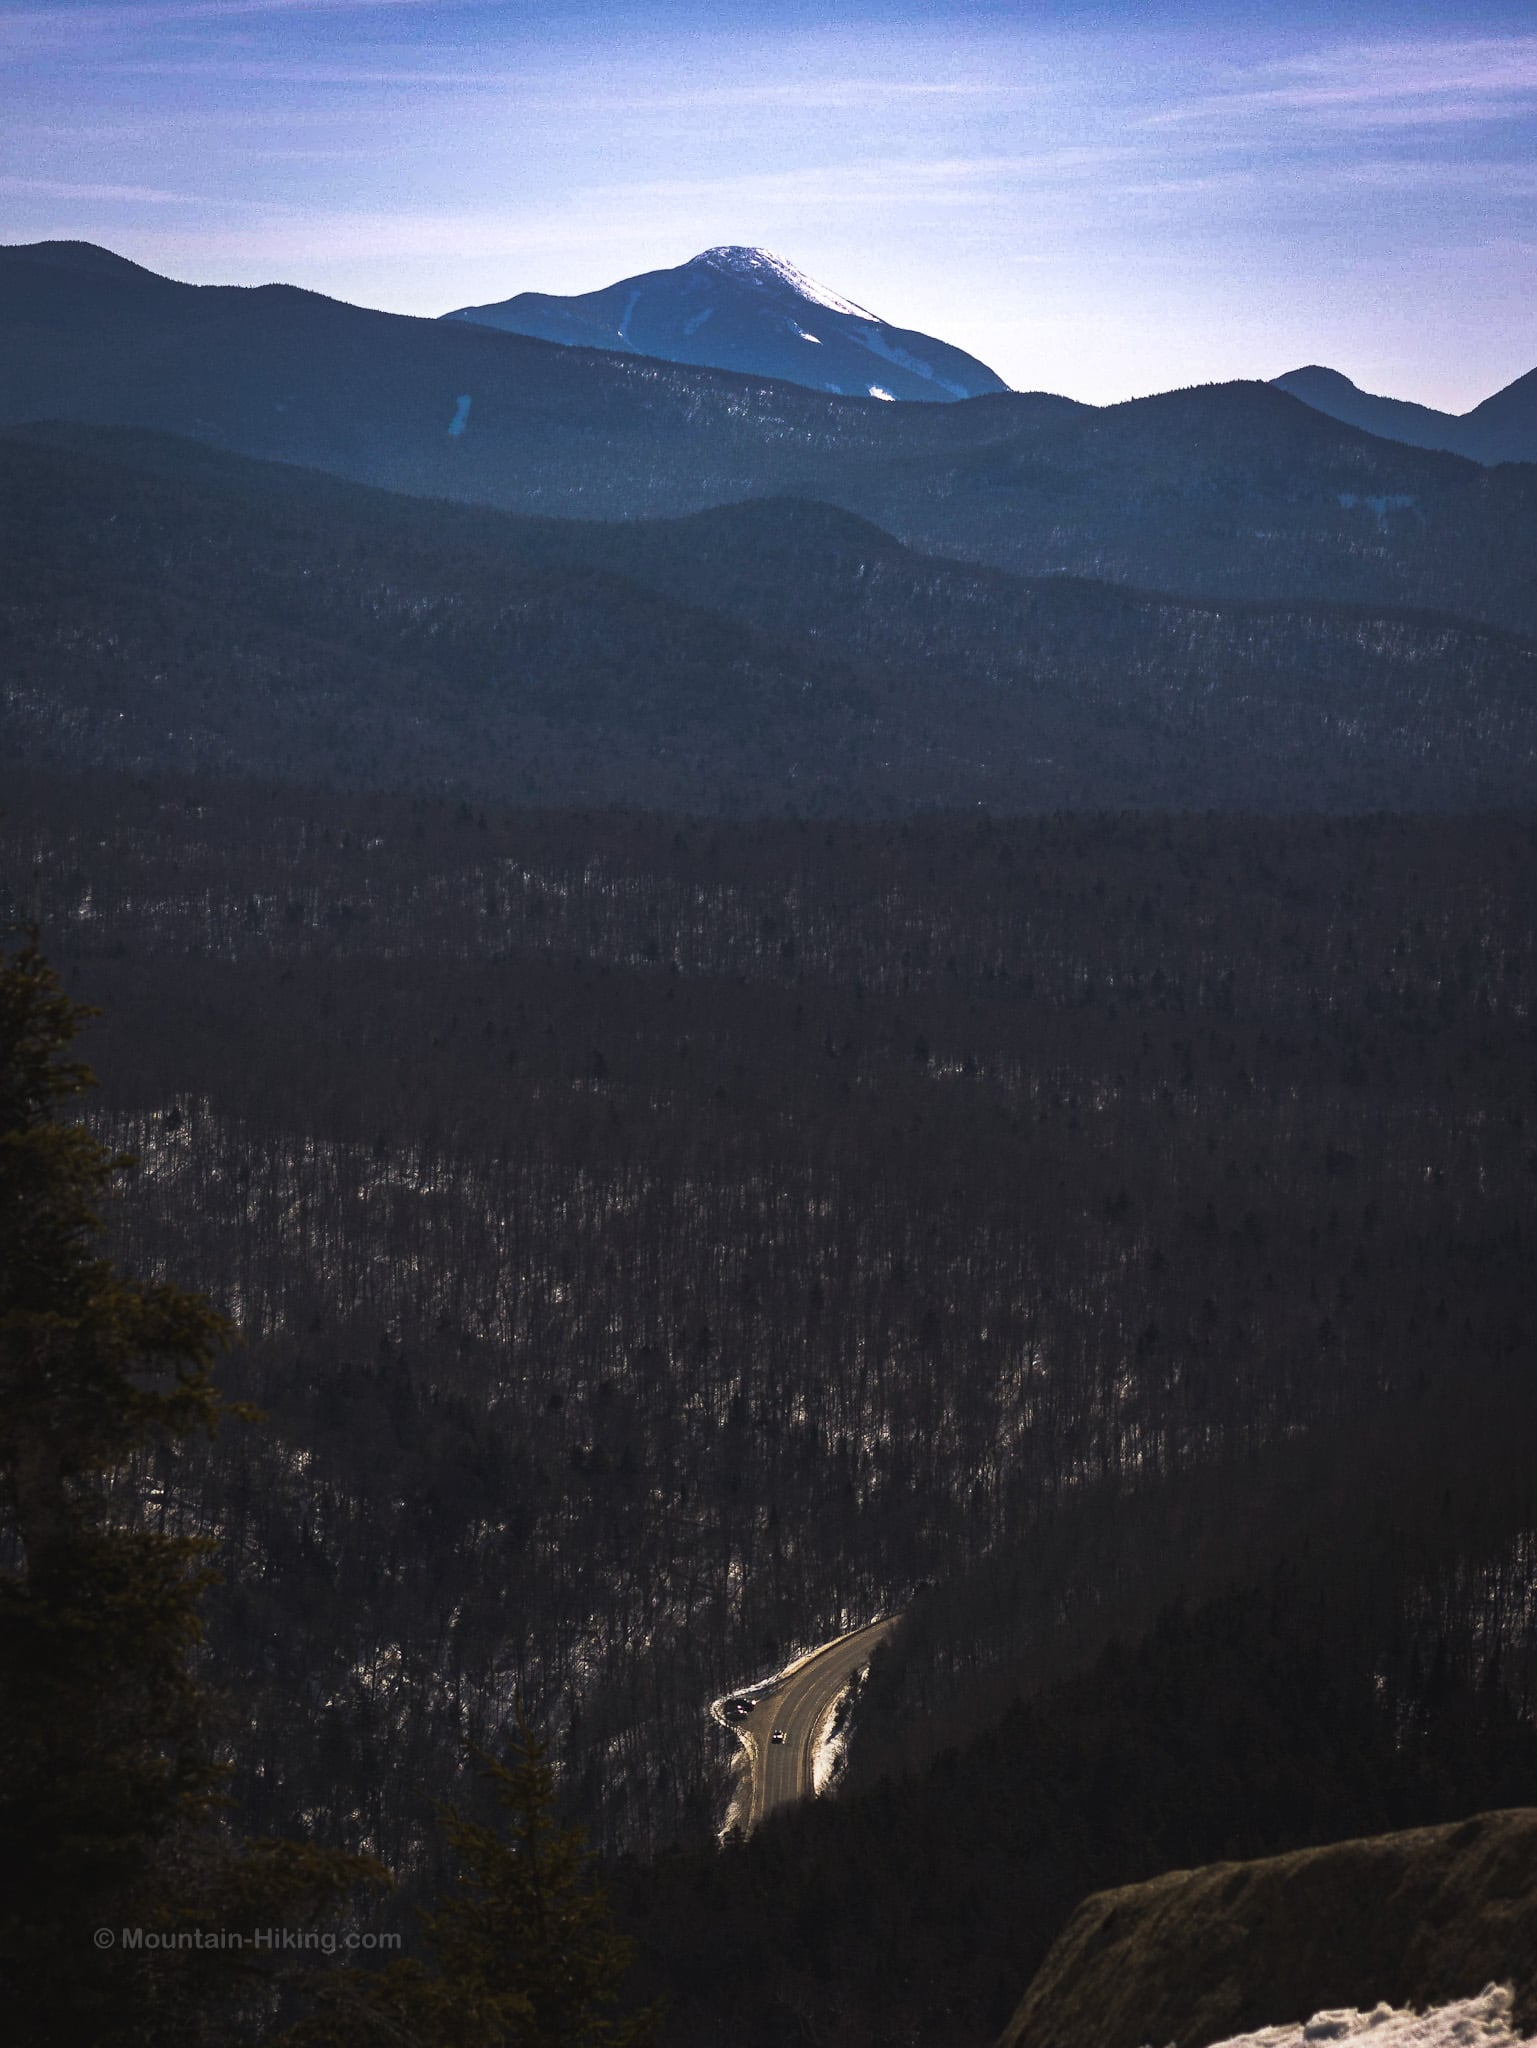 Mount Colden's summit seen from just beyond balanced rocks